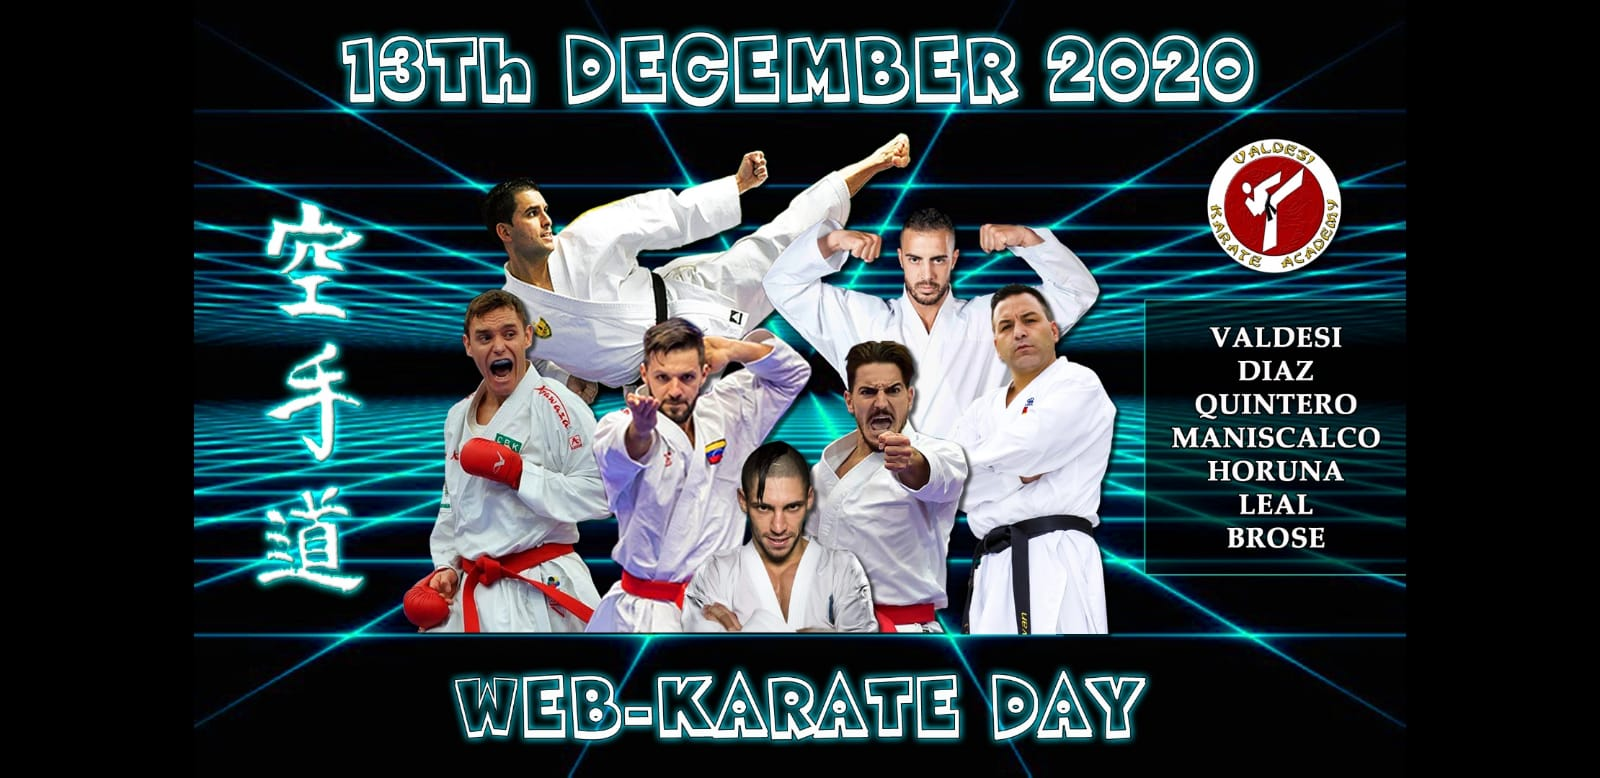 Web Karate Day - All 4 Kumite Sessions